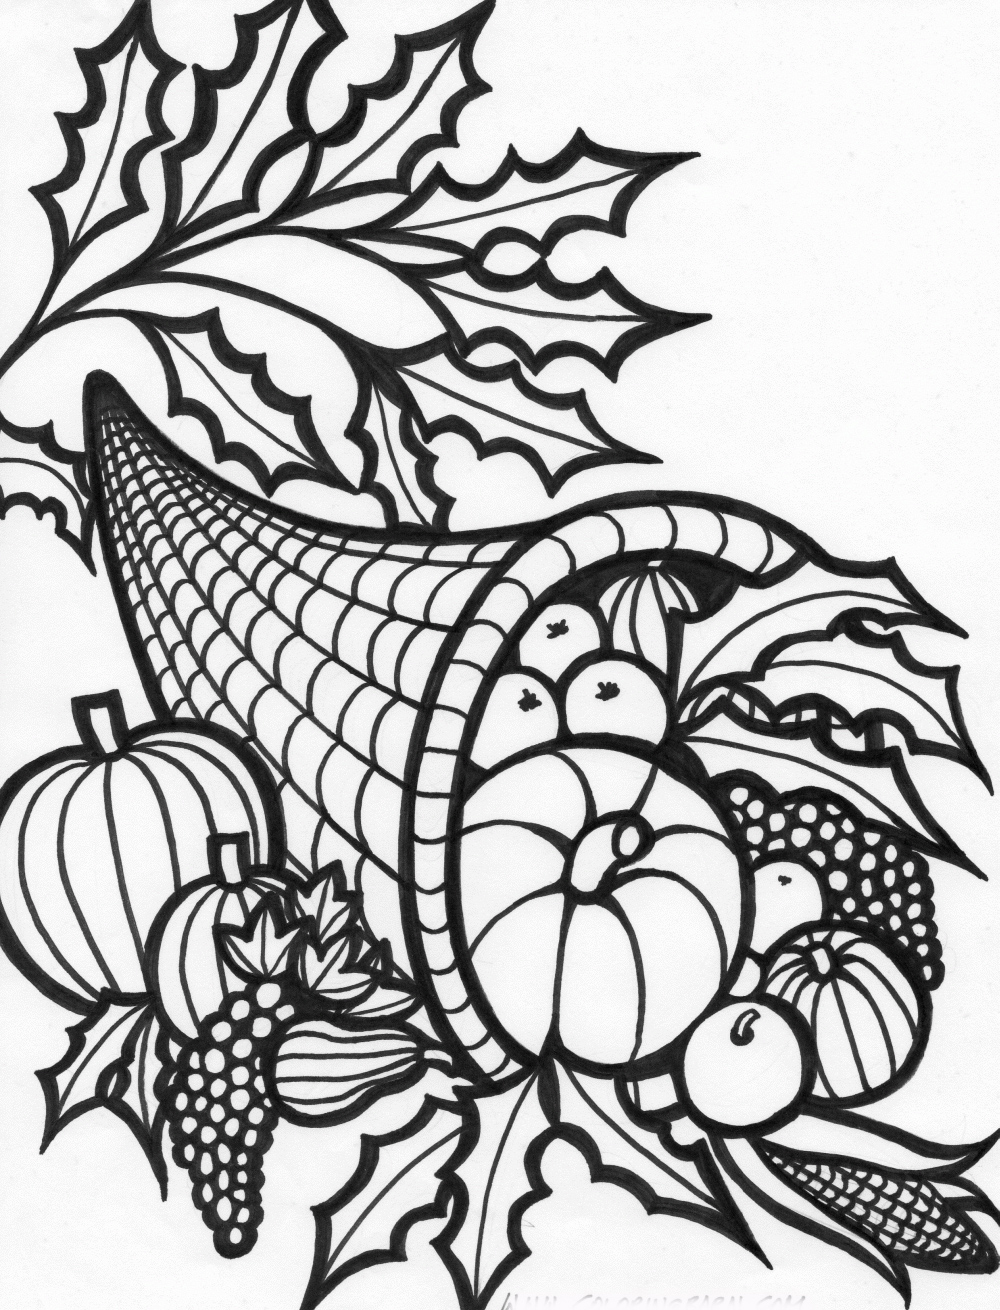 picture of cornucopia to color empty cornucopia coloring pages printables sketch coloring to cornucopia picture of color